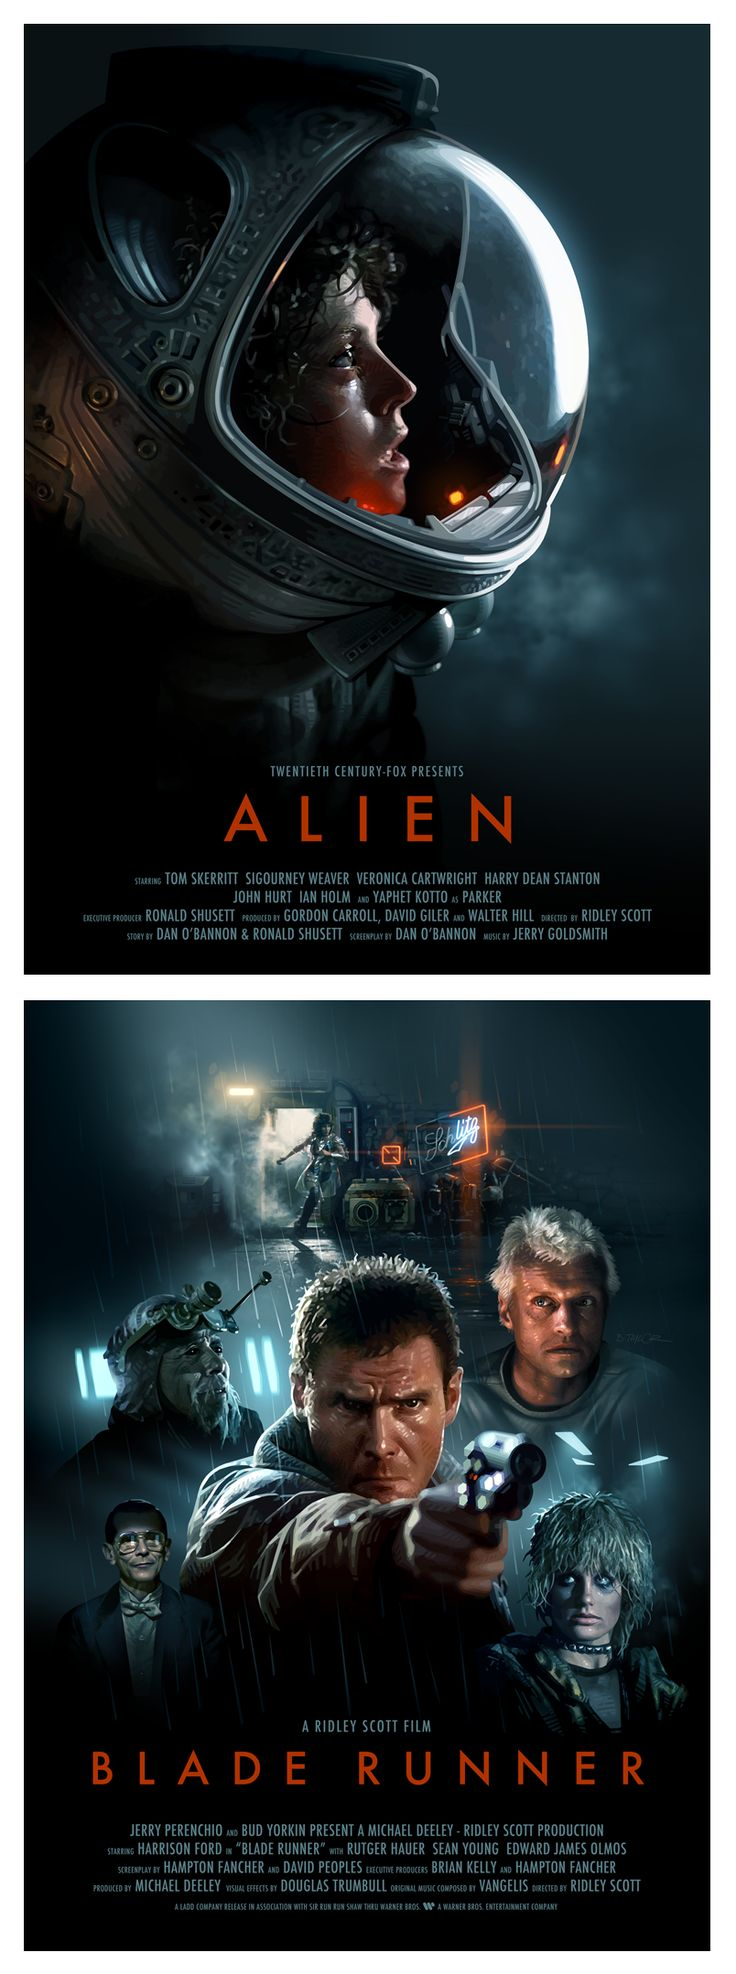 2 amazing films. Definitely would make my ultimate collection! - Alien and Blade Runner Posters